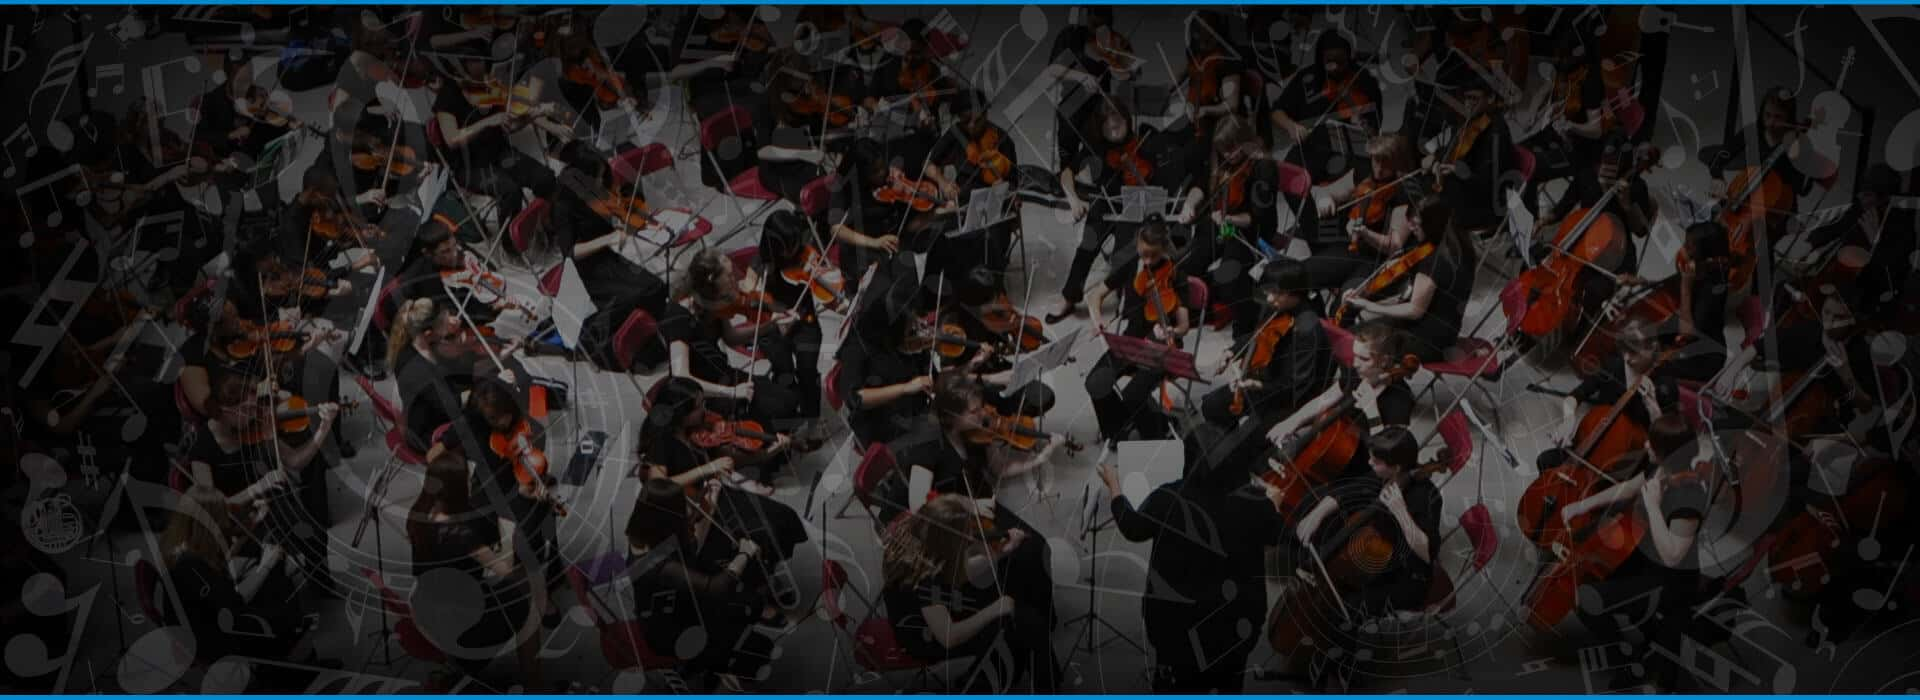 Travel planner for the finest bands, choirs and orchestras in the world..